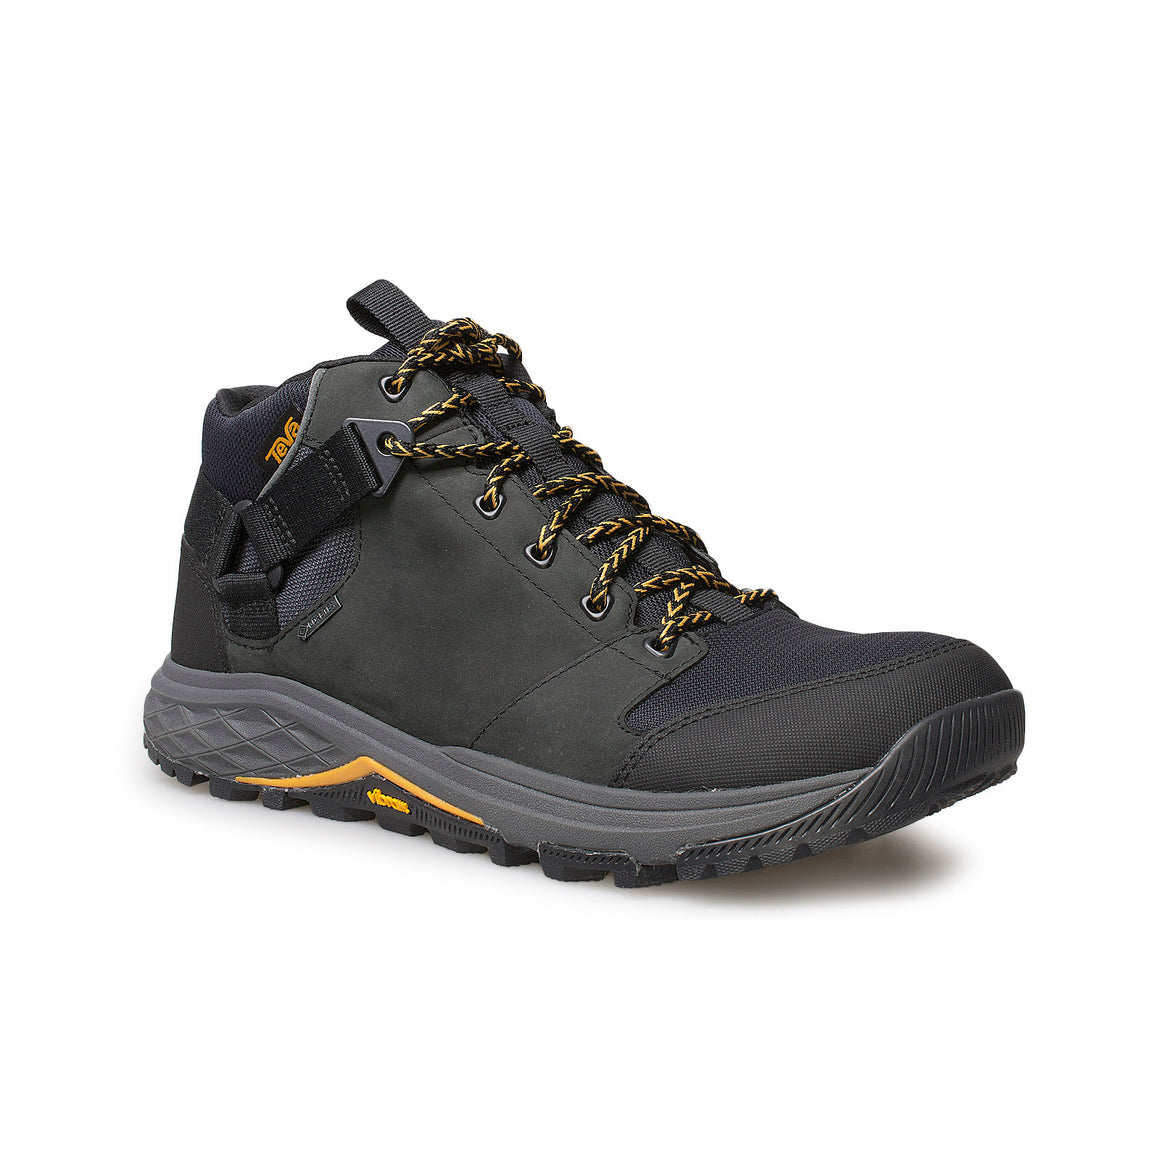 Teva Grandview GTX Black Boots - Men's